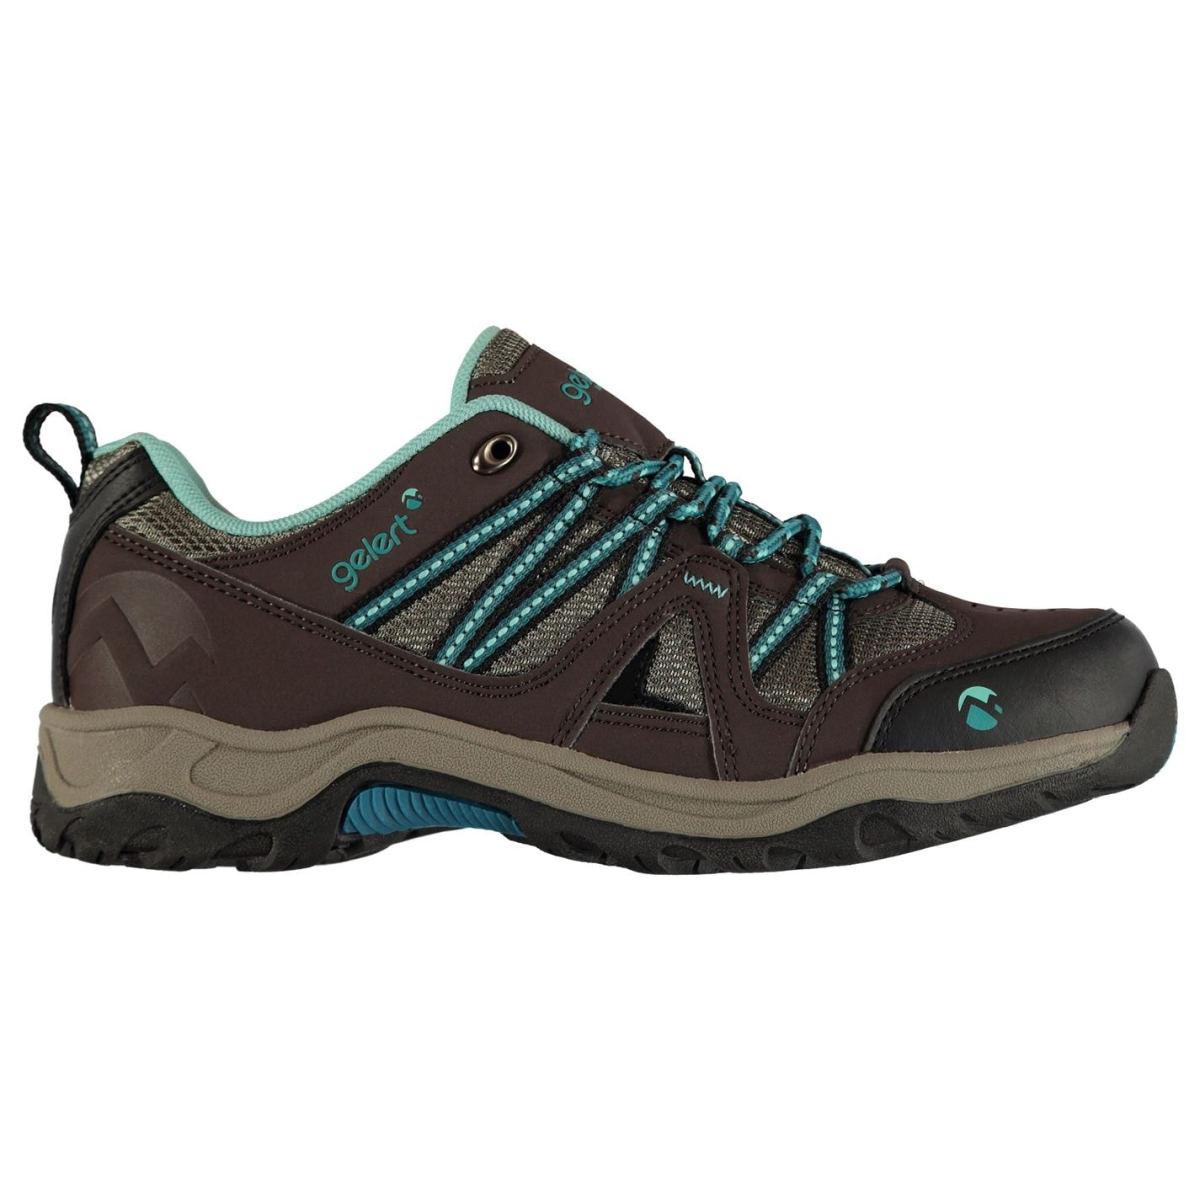 Gelert Ottawa Low Damen Wanderschuhe Brown_Türkis